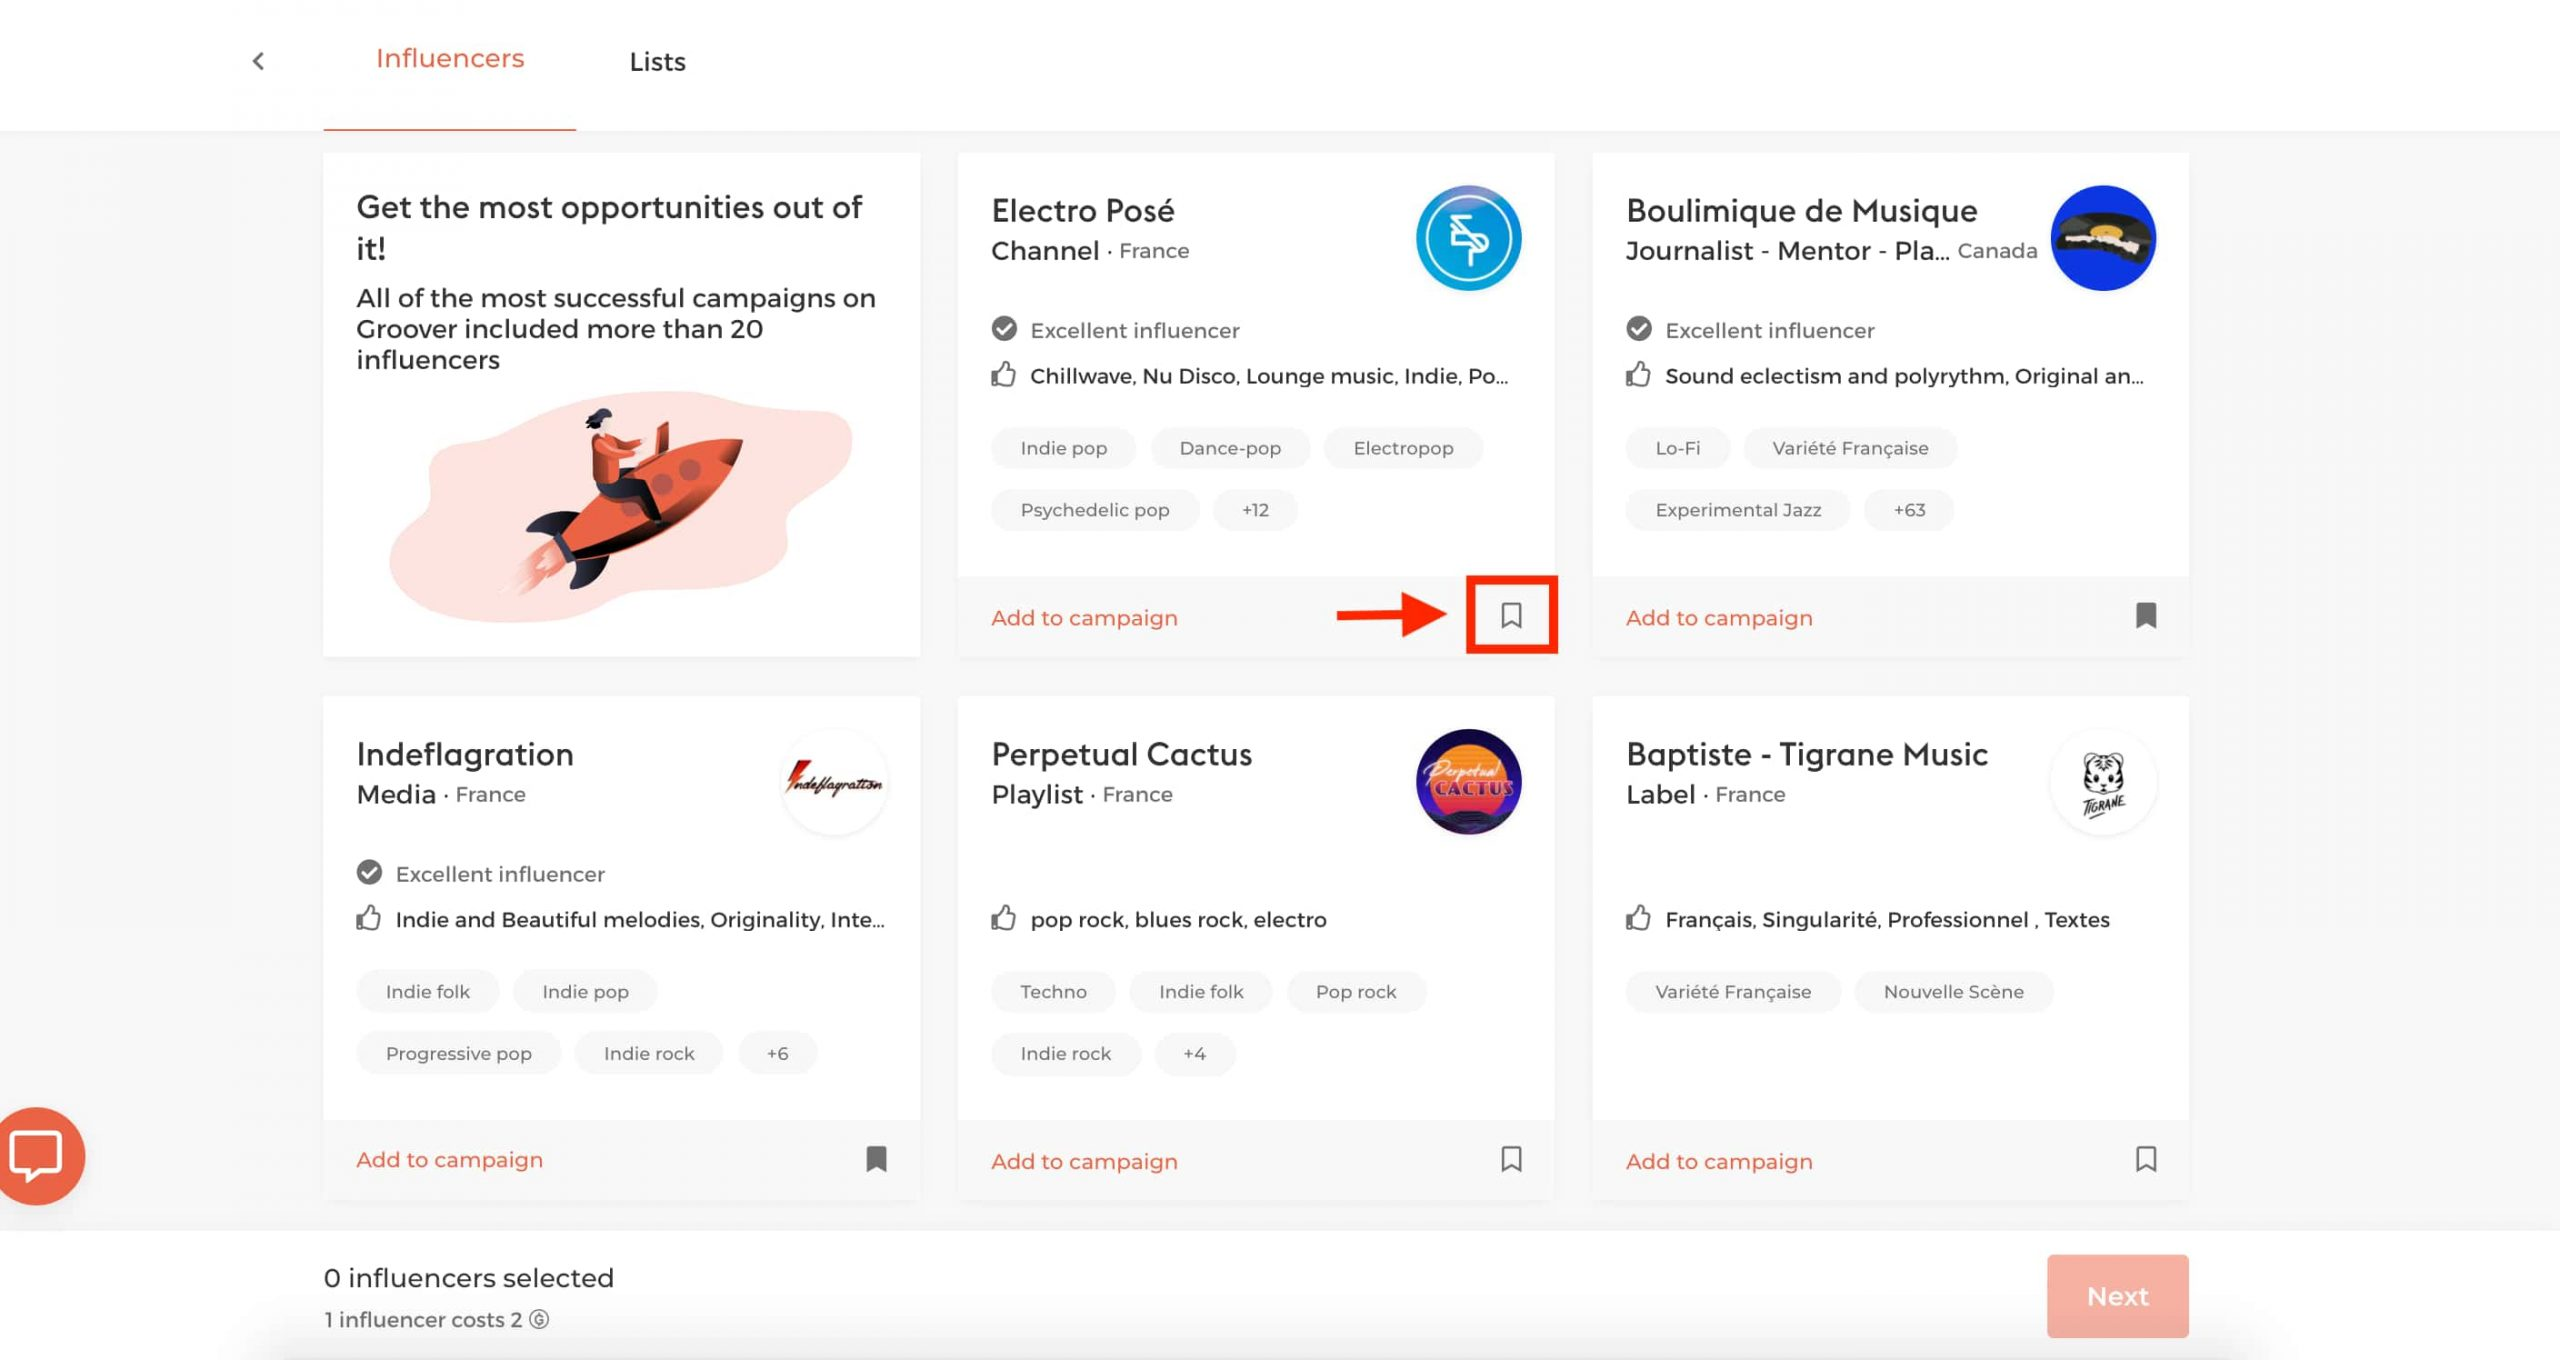 On Groover you can prepare organized lists of influencers- via the little bookmark icon- based on promotion type or timing